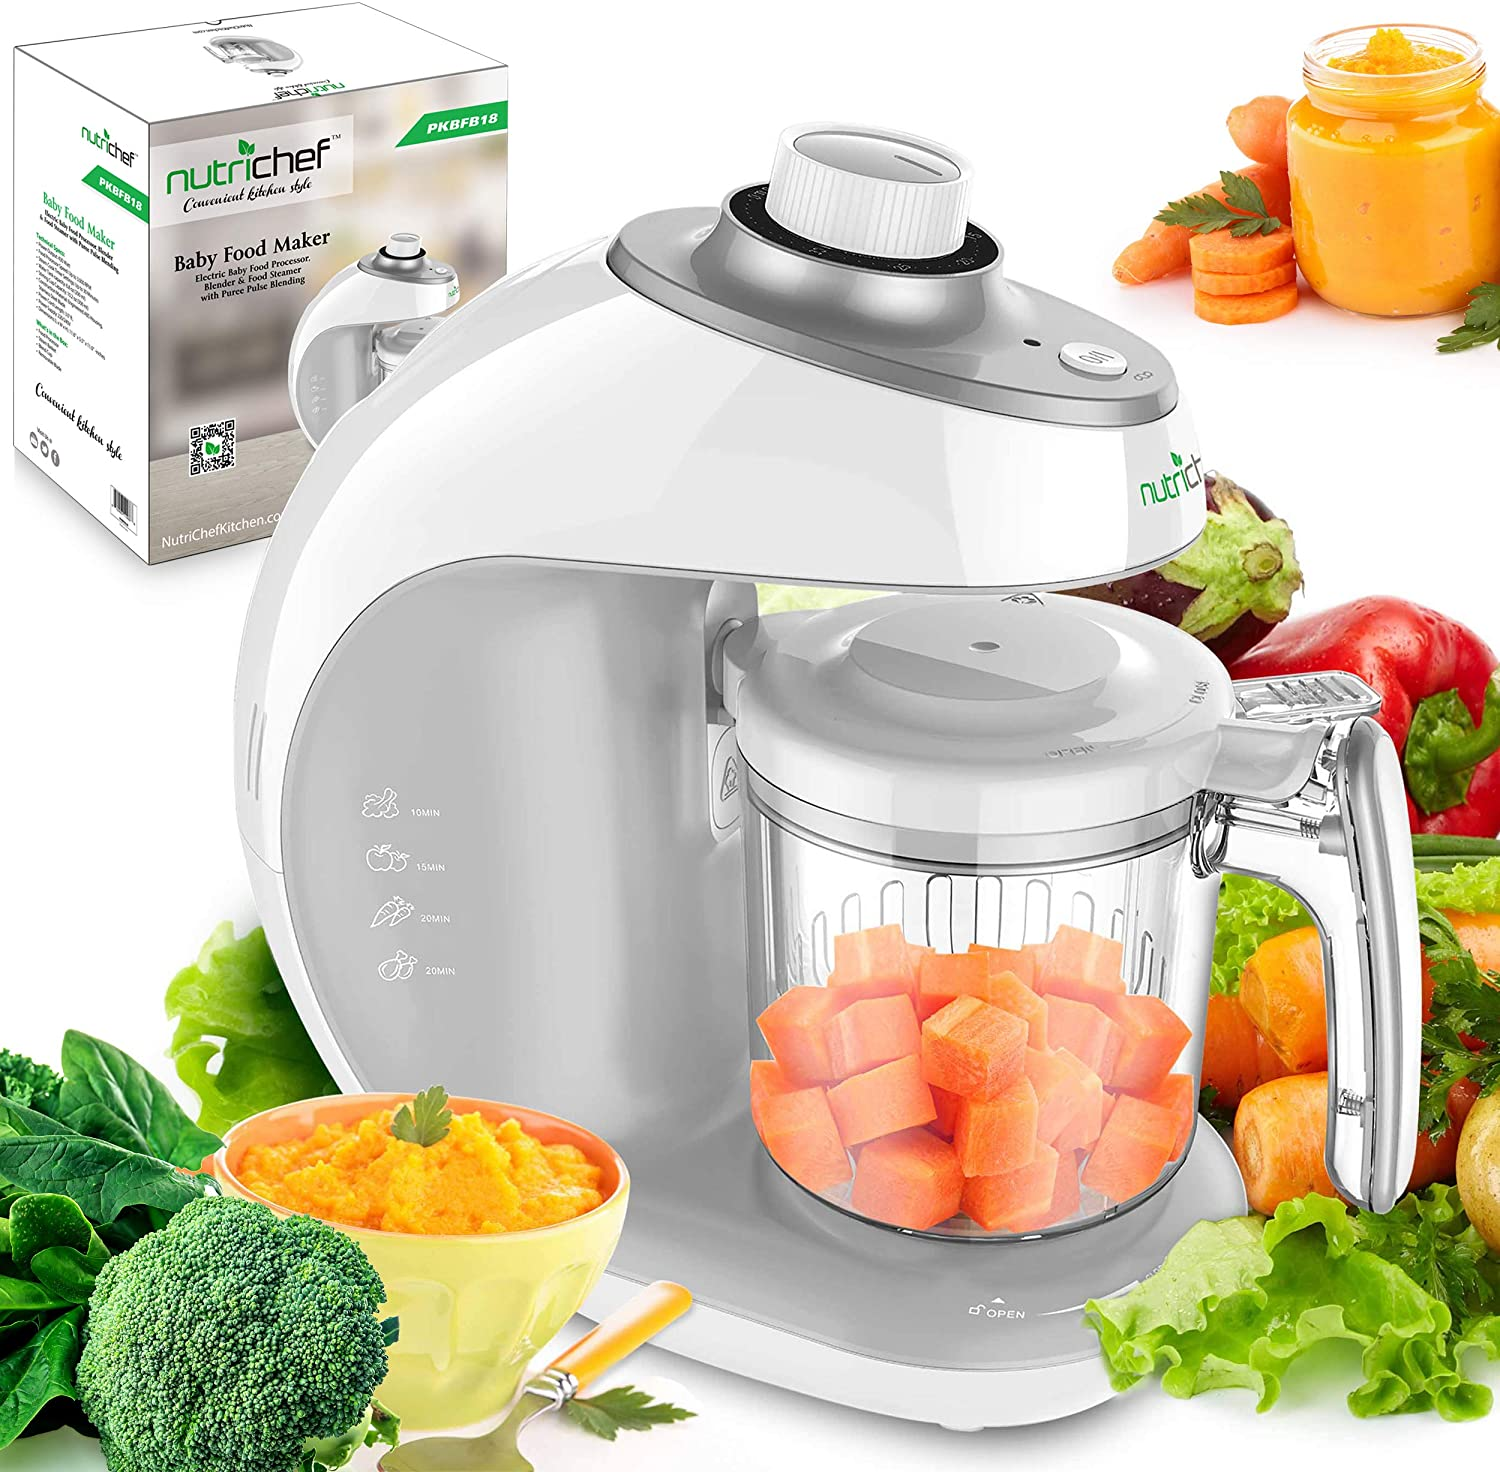 NutriChef Digital Baby Food Maker